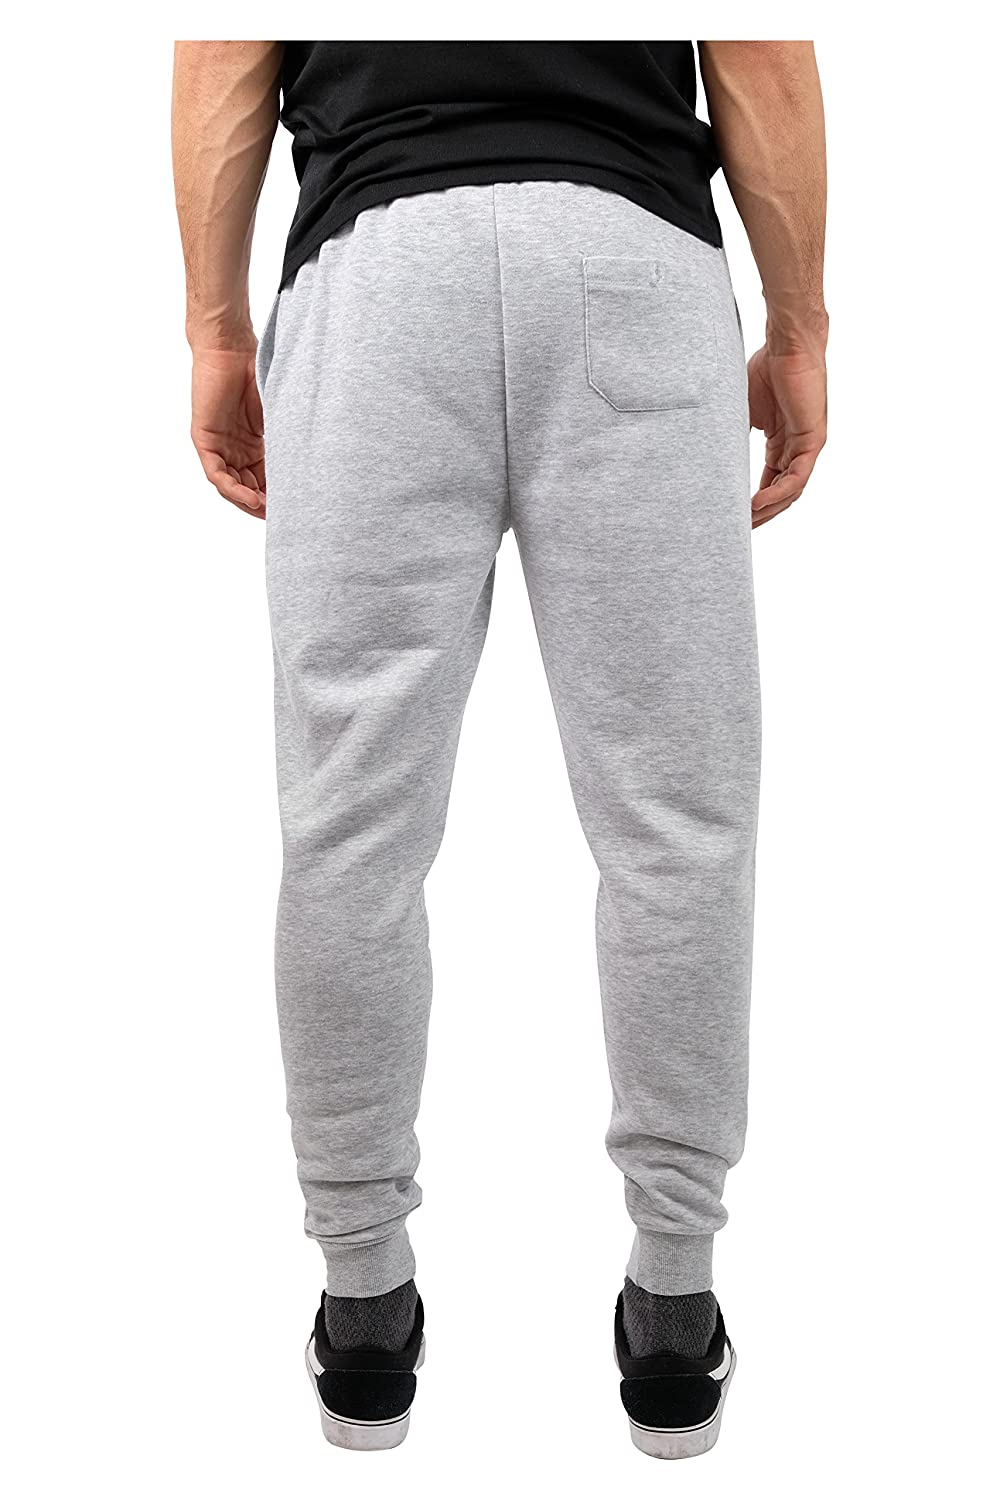 Heather Gray Large NFL Cleveland Browns Ultra Game Mens JOGGER